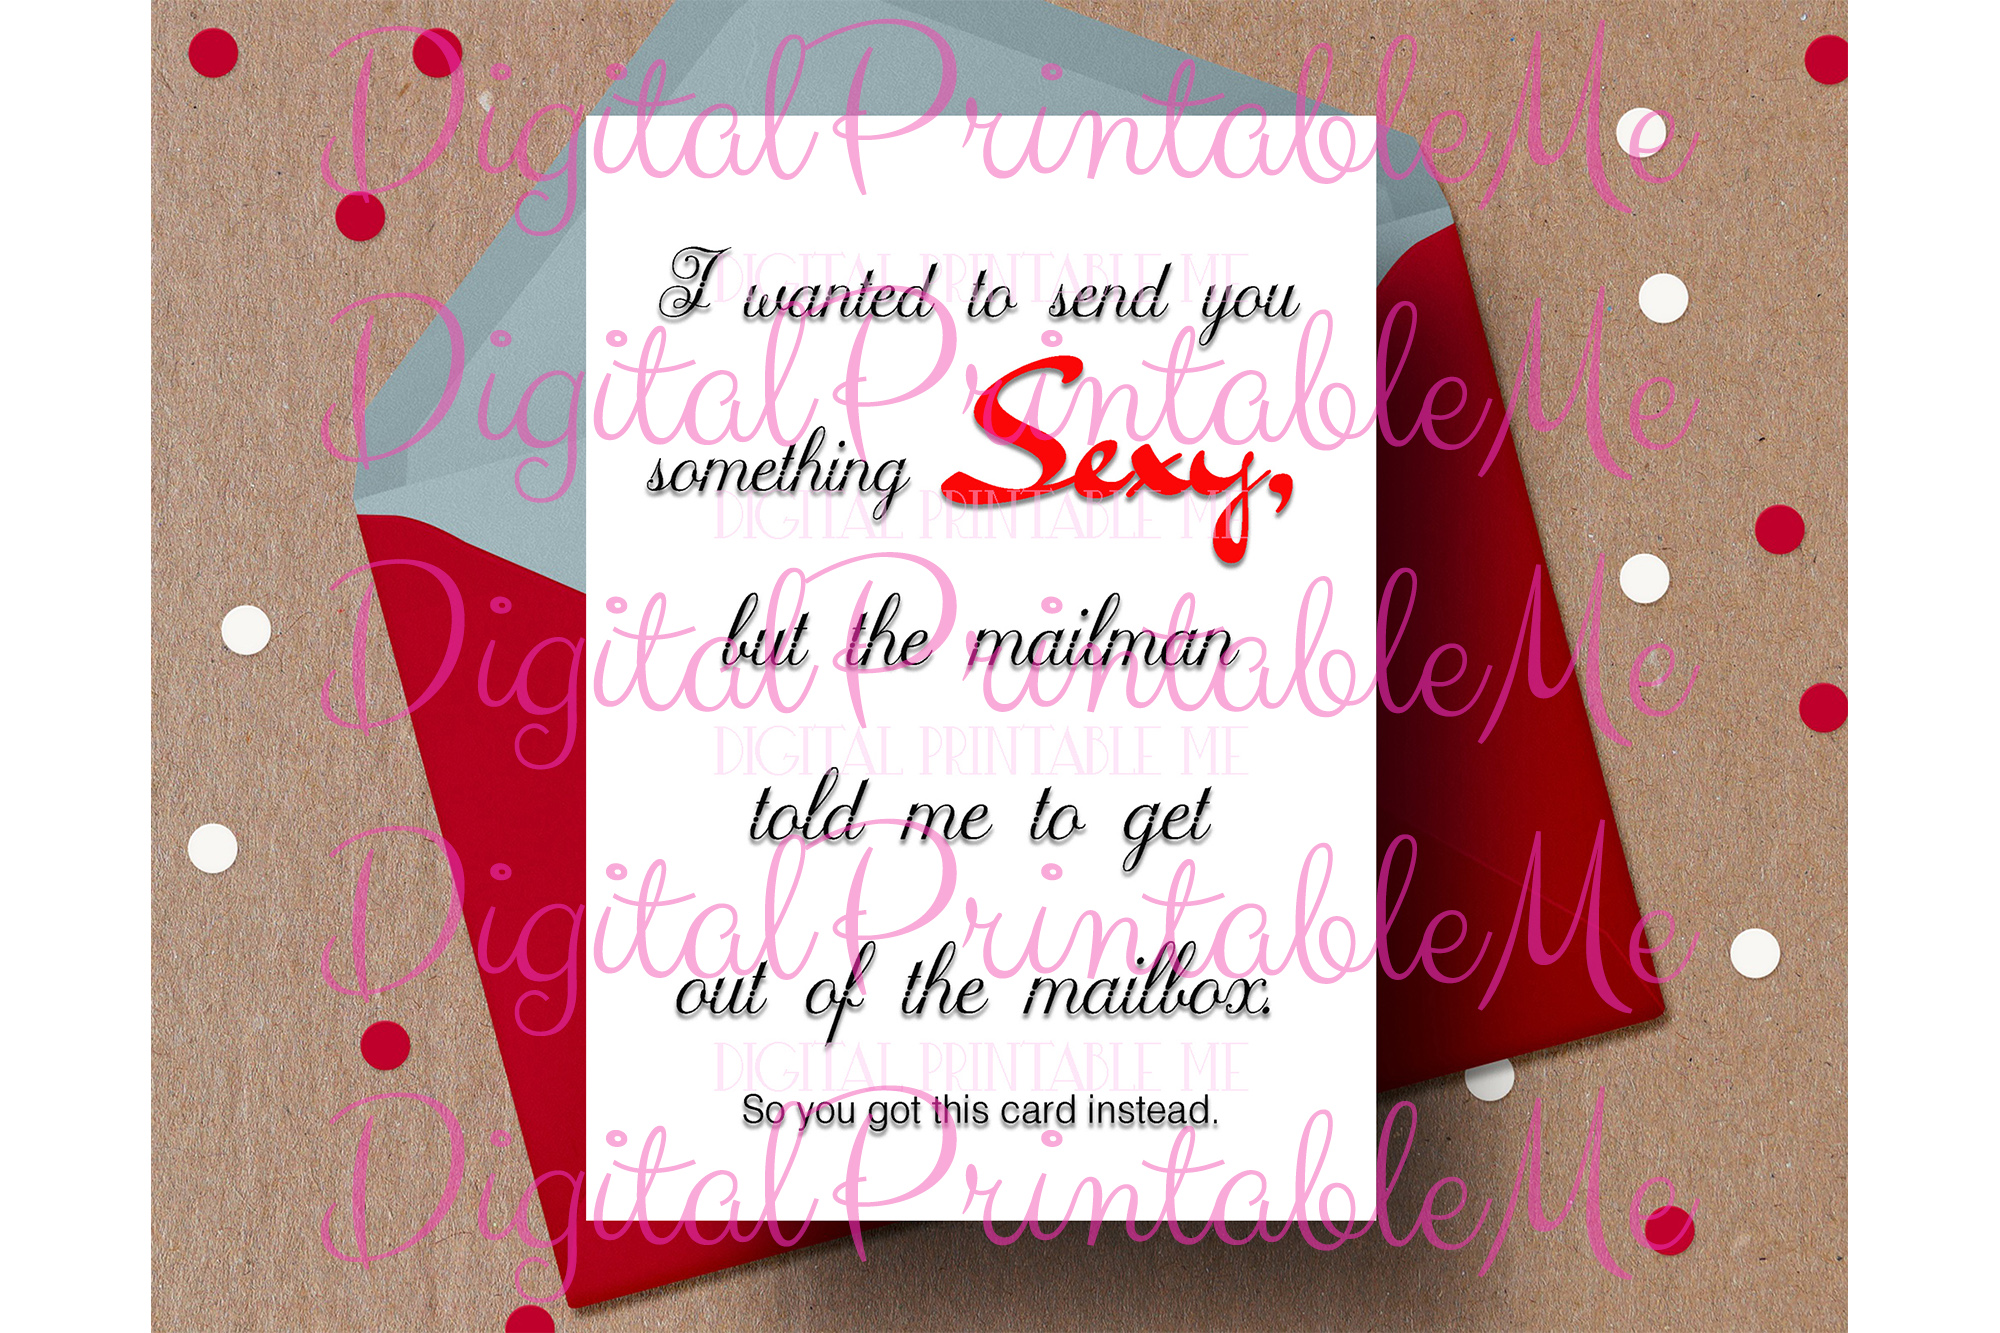 Download Free Funny Valentine S Day Card Naughty Sexy Grafico Por for Cricut Explore, Silhouette and other cutting machines.